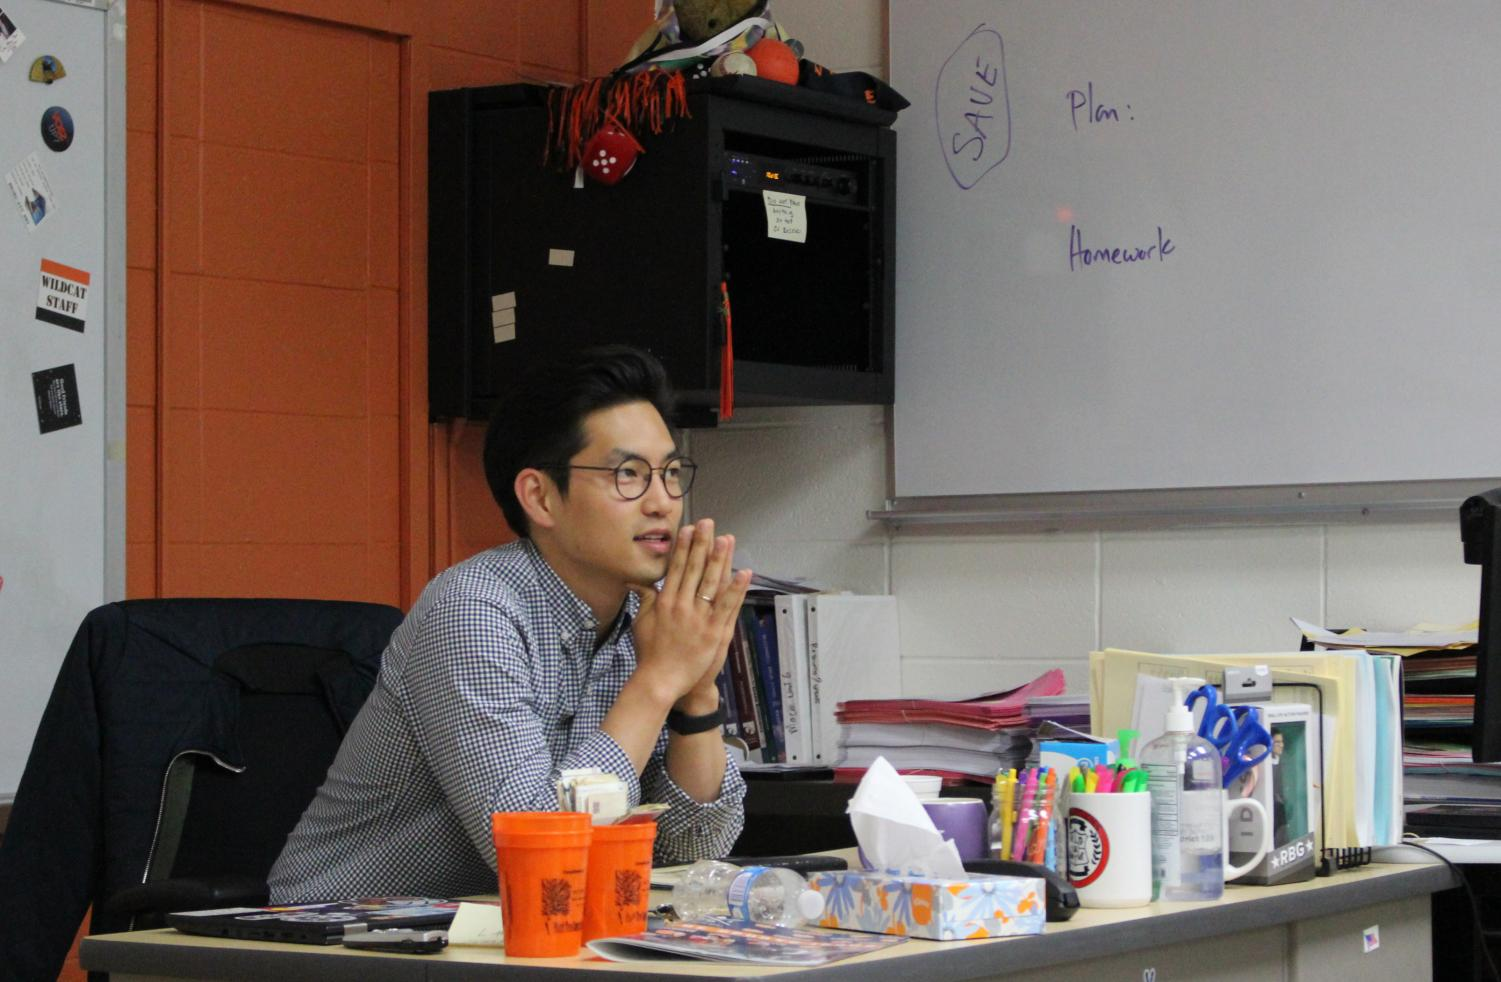 Mr. Kim reflects on the two years he taught at LHS, saying,